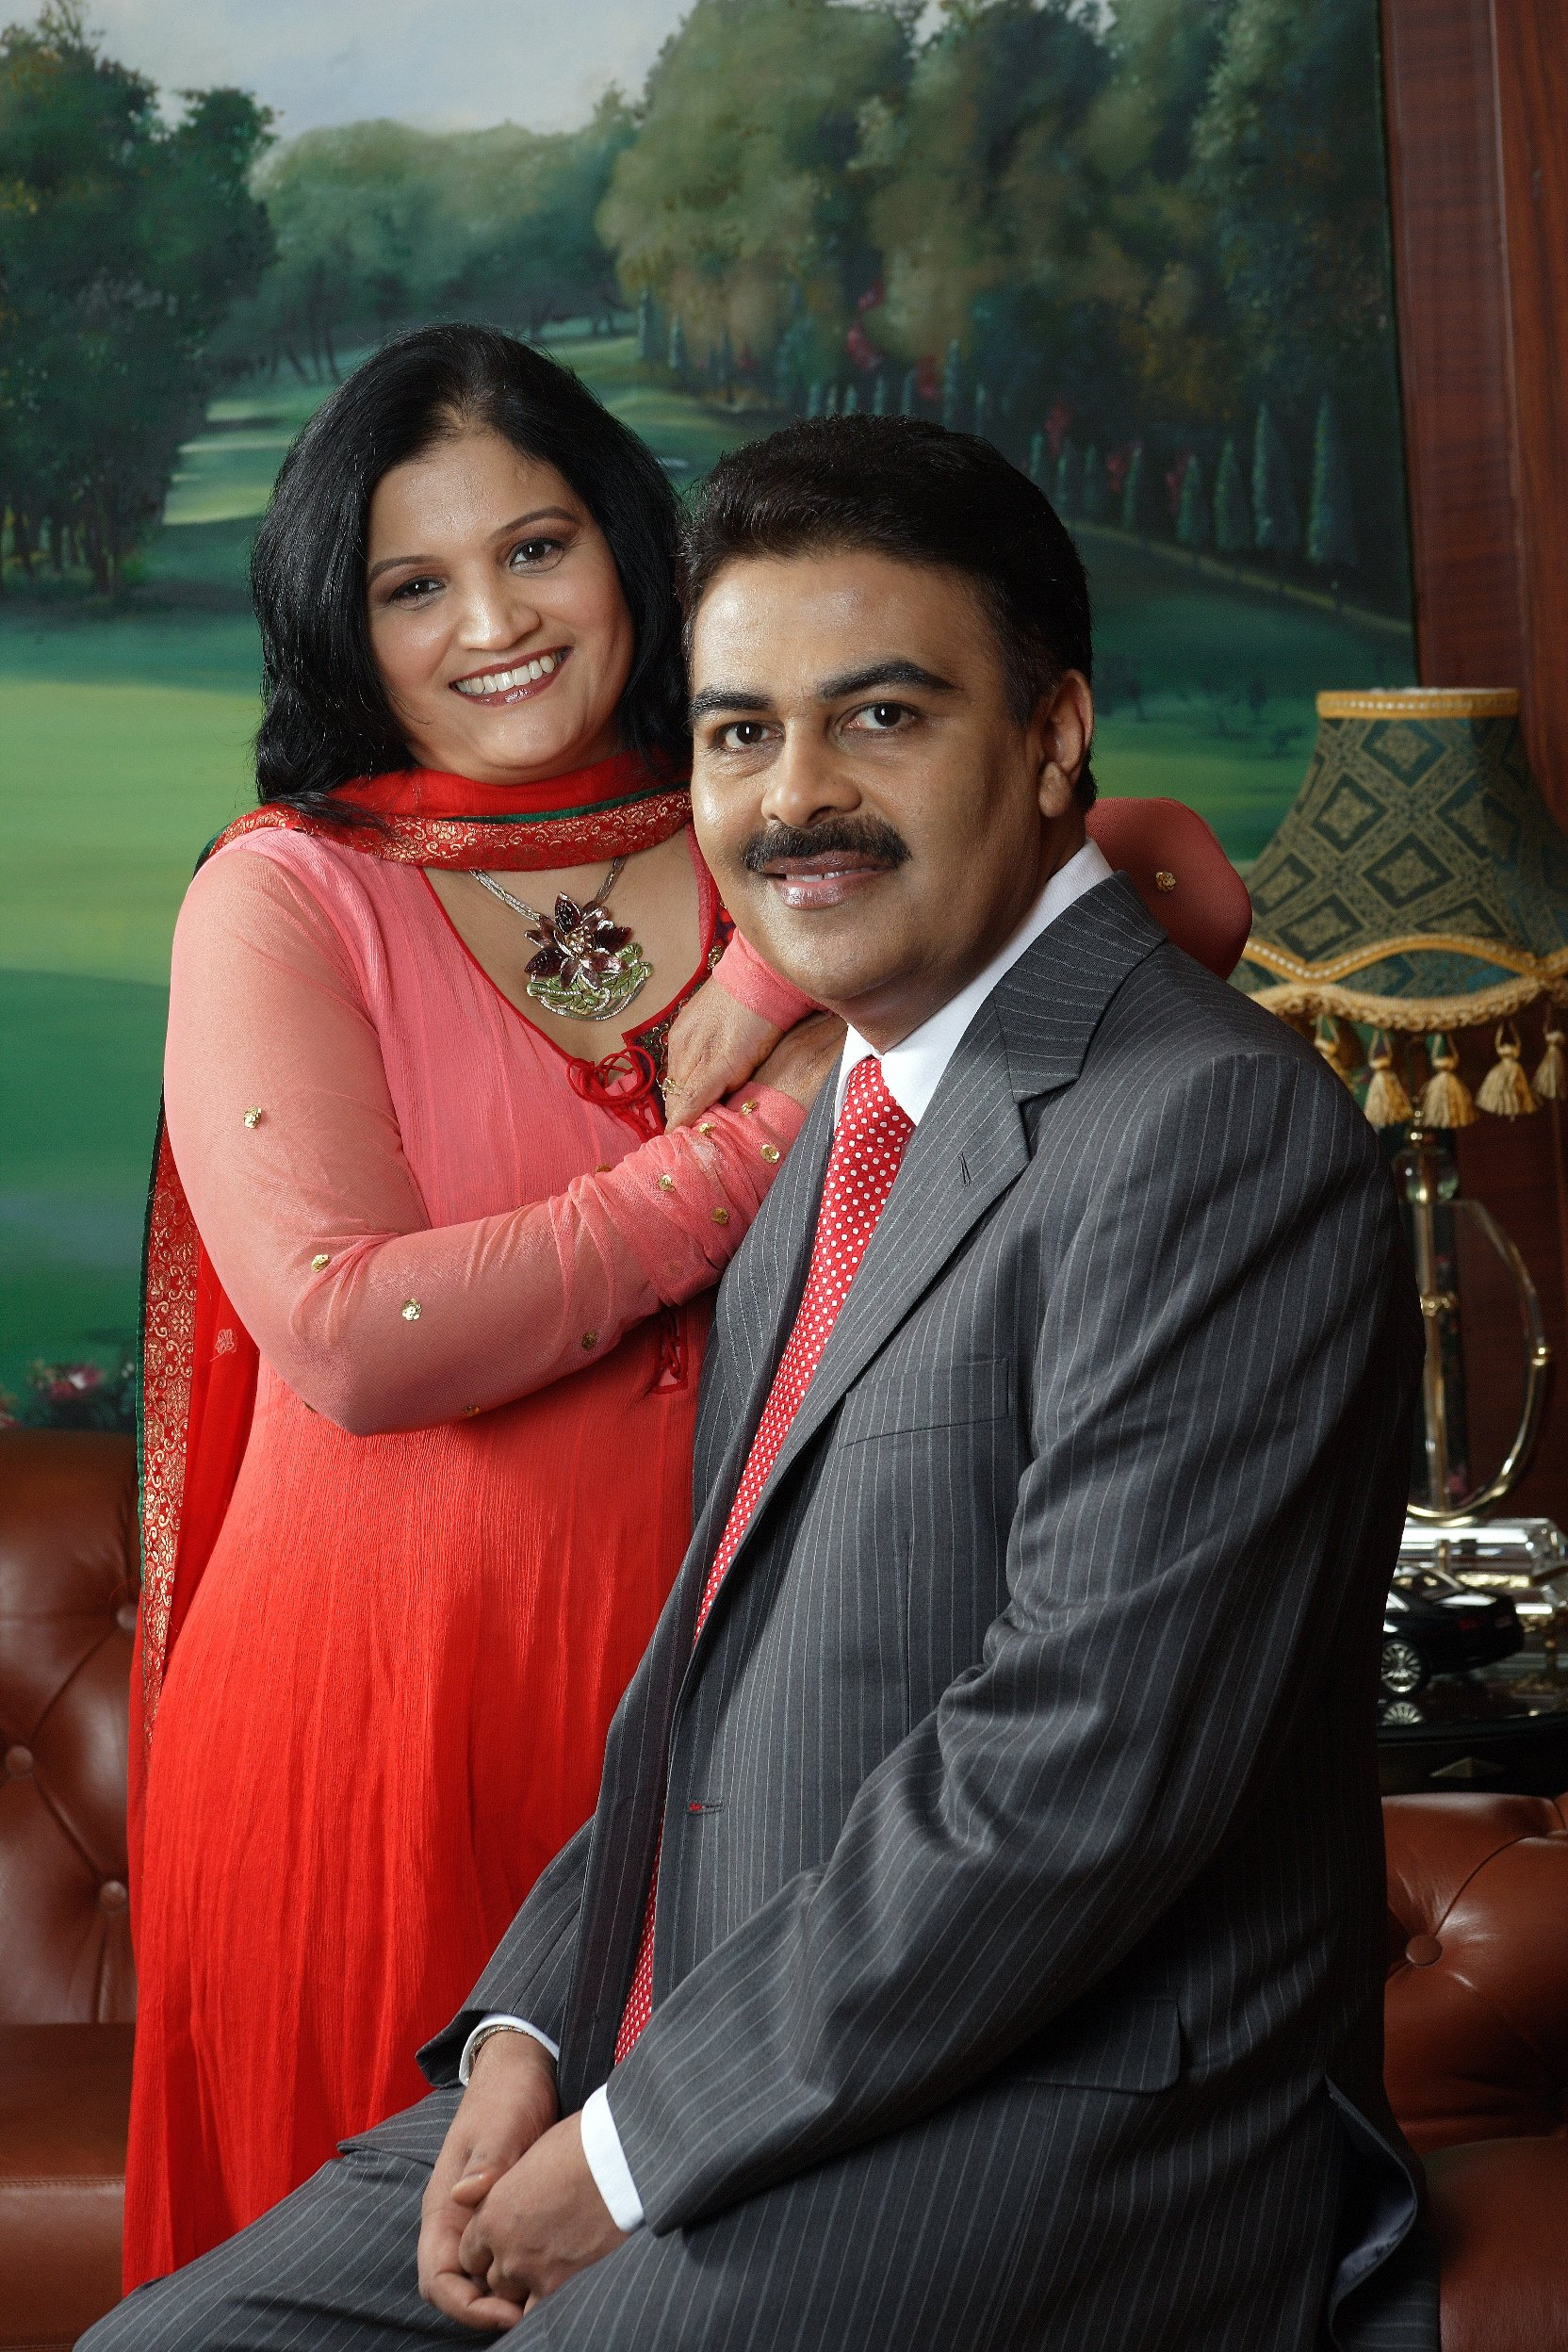 Power Couple: Snehal Mantri, Director- Marketing & HR, Mantri Developers & Sushil Mantri CMD, Mantri Developers